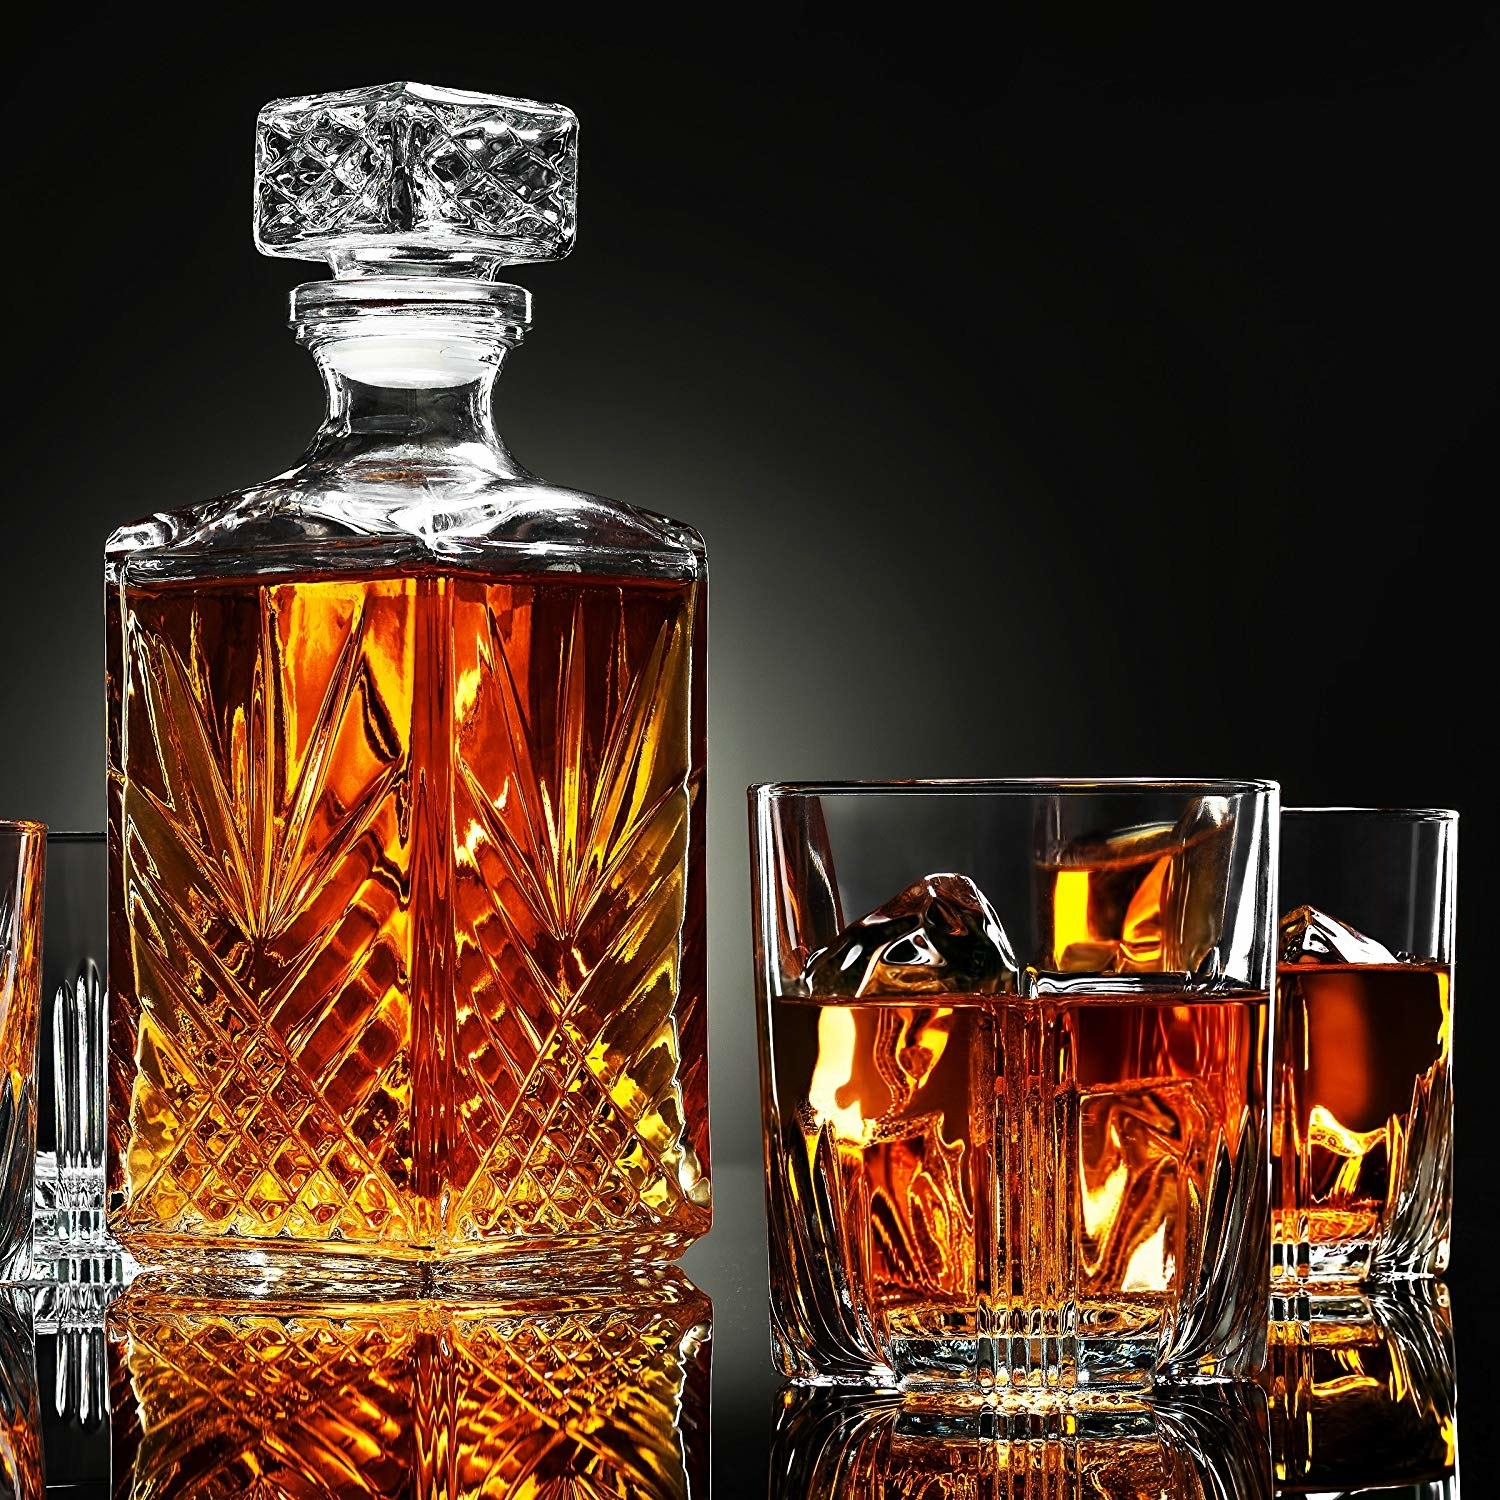 crystal cut decanter and two matching drinking glasses filled with brown liquor